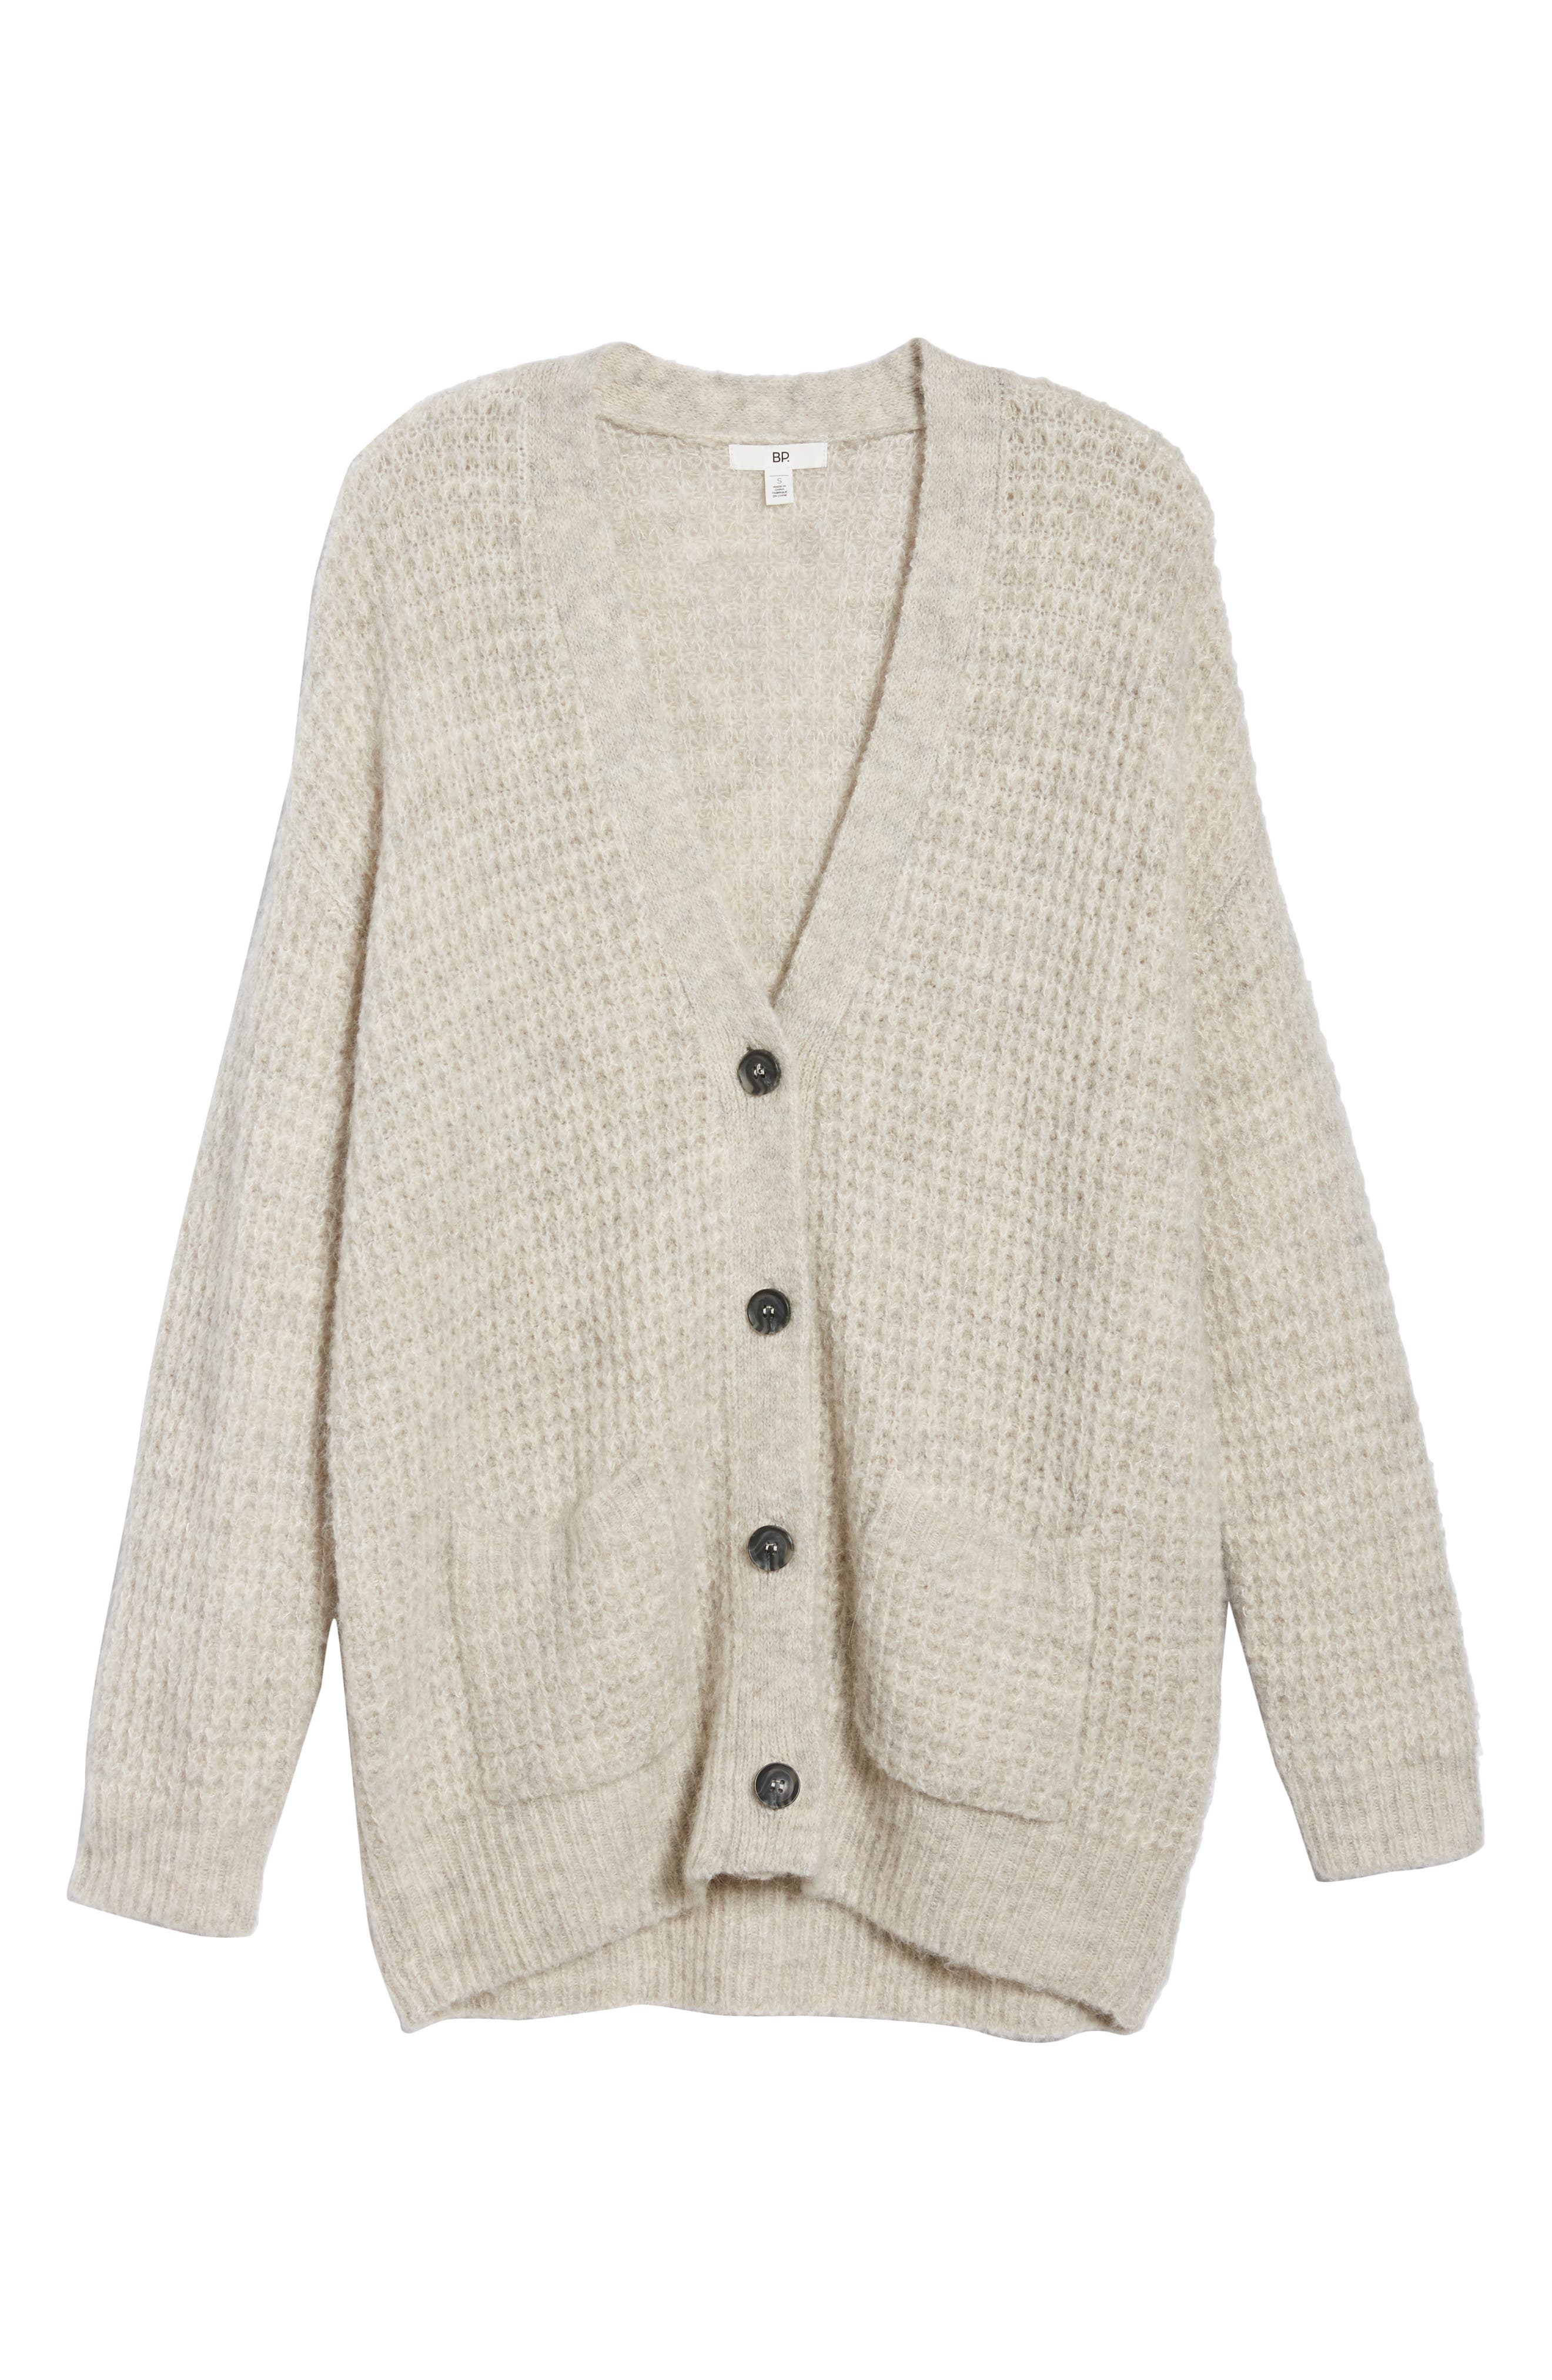 Oversized Waffle Stitch Cardigan,                             Alternate thumbnail 7, color,                             Beige Birch